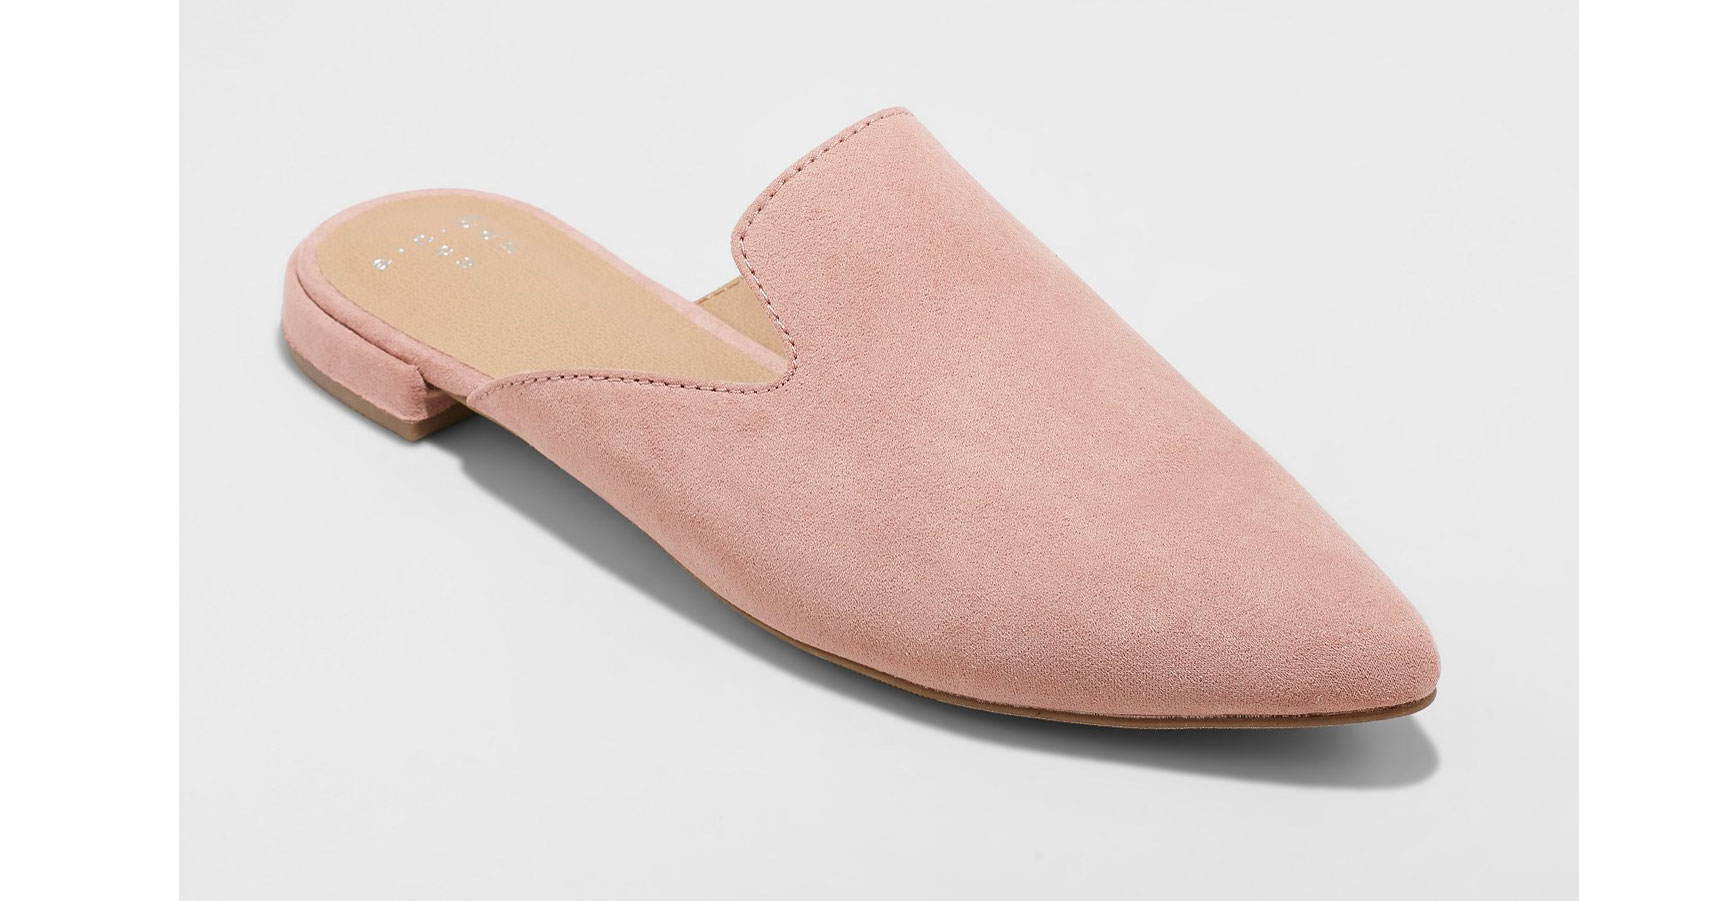 vela-slip-on-pointy-toe-mules